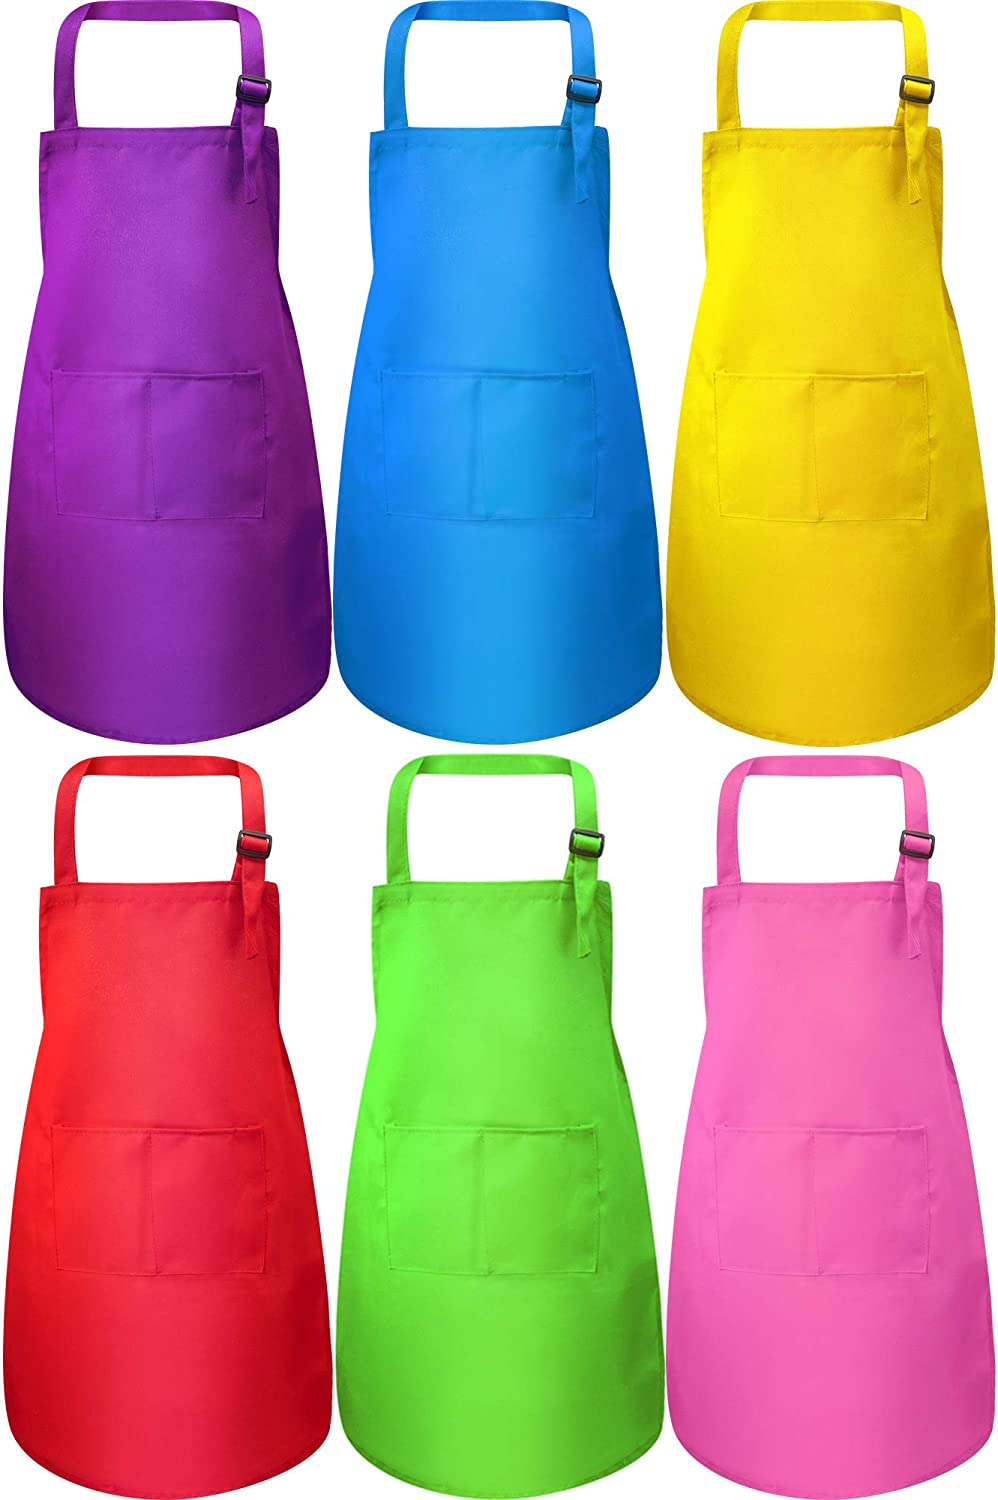 6 Pieces Kids Apron with Pocket Adjustable Super beauty product restock Long-awaited quality top Children f Chef